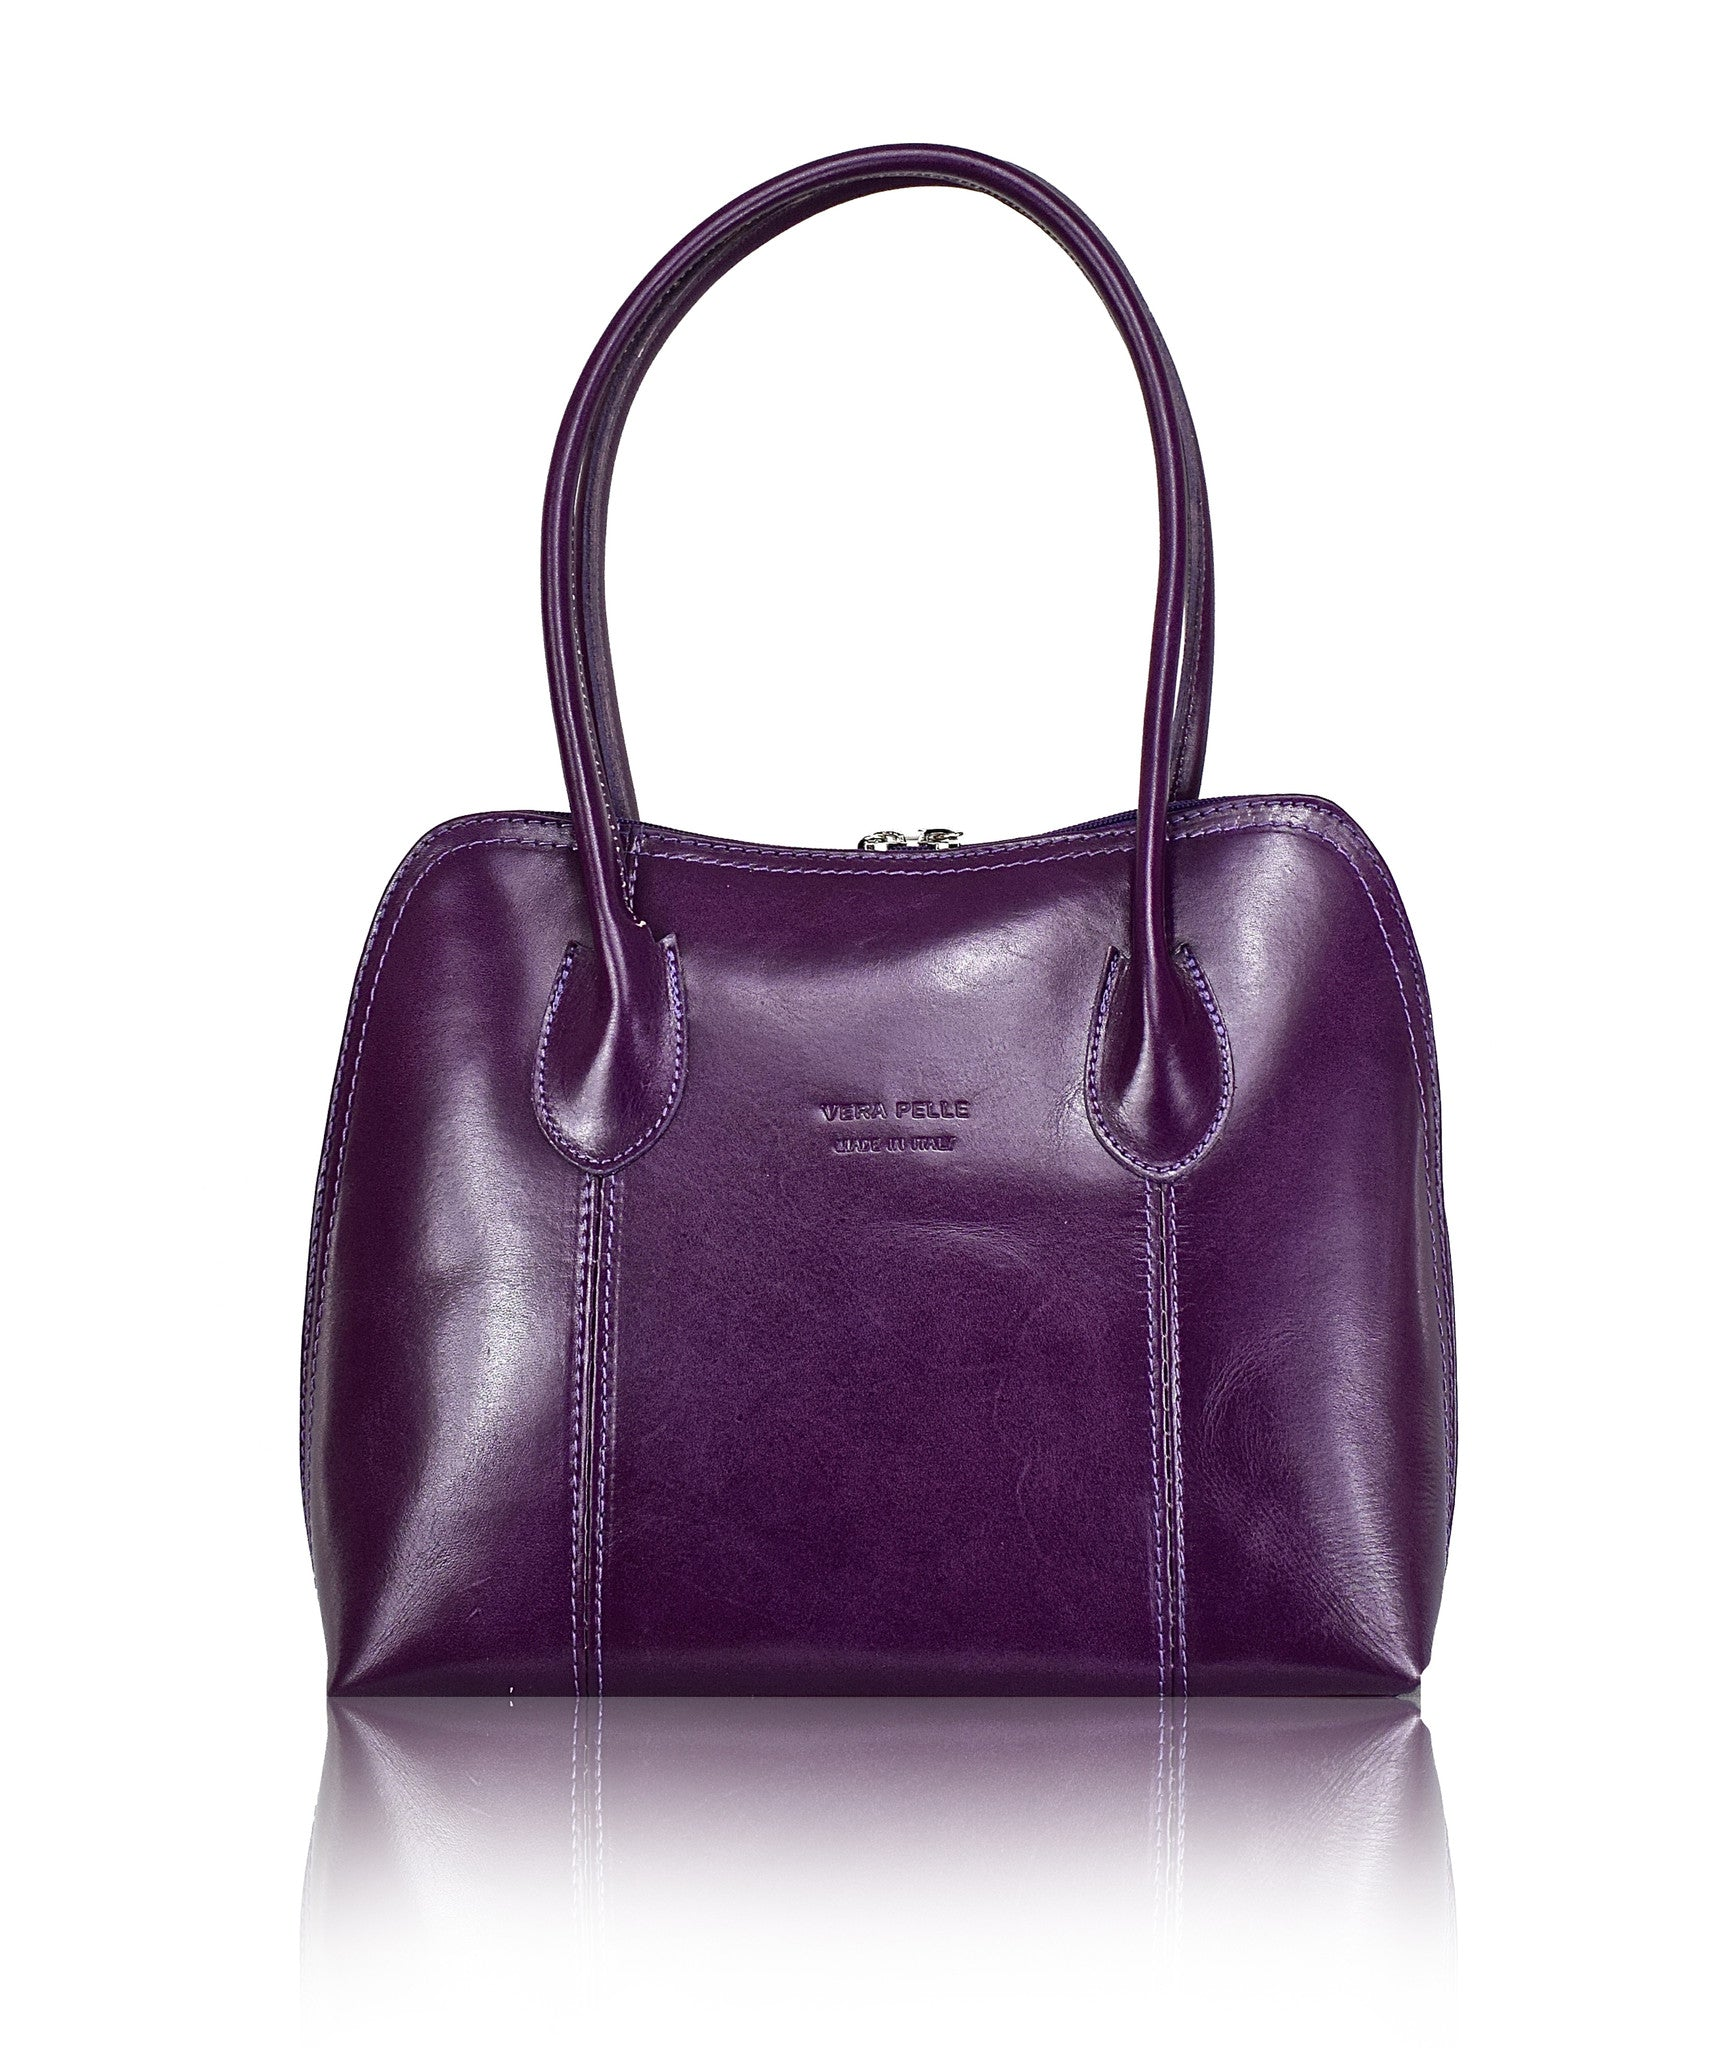 Sillano purple italian shoulder bag front view